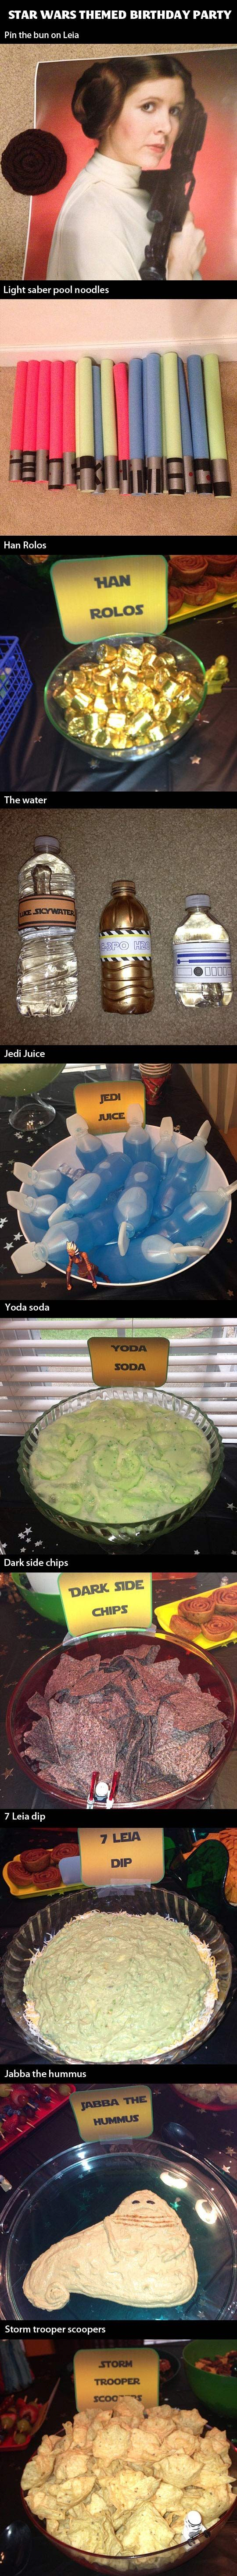 Star Wars themed birthday party…